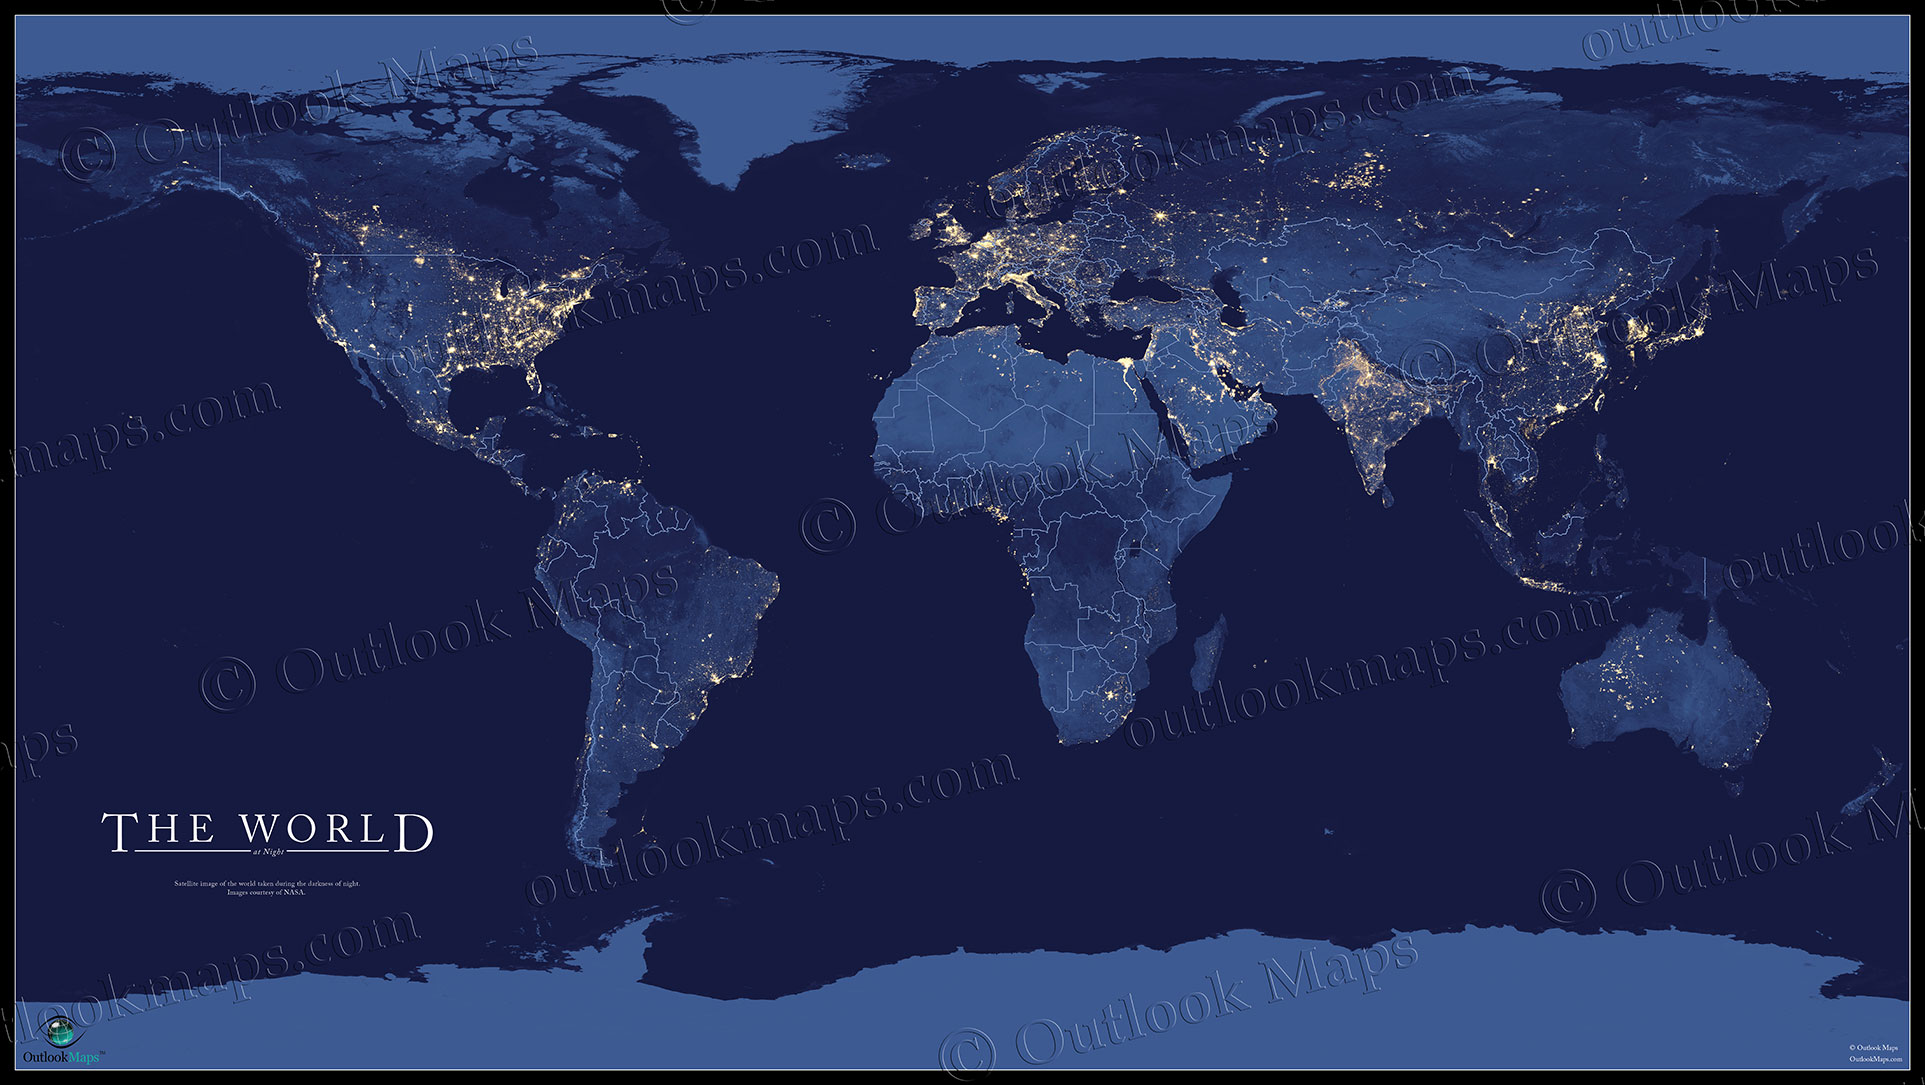 World map at night nasa satellite view of city lights world wall map at darkness showing city lights at night gumiabroncs Choice Image